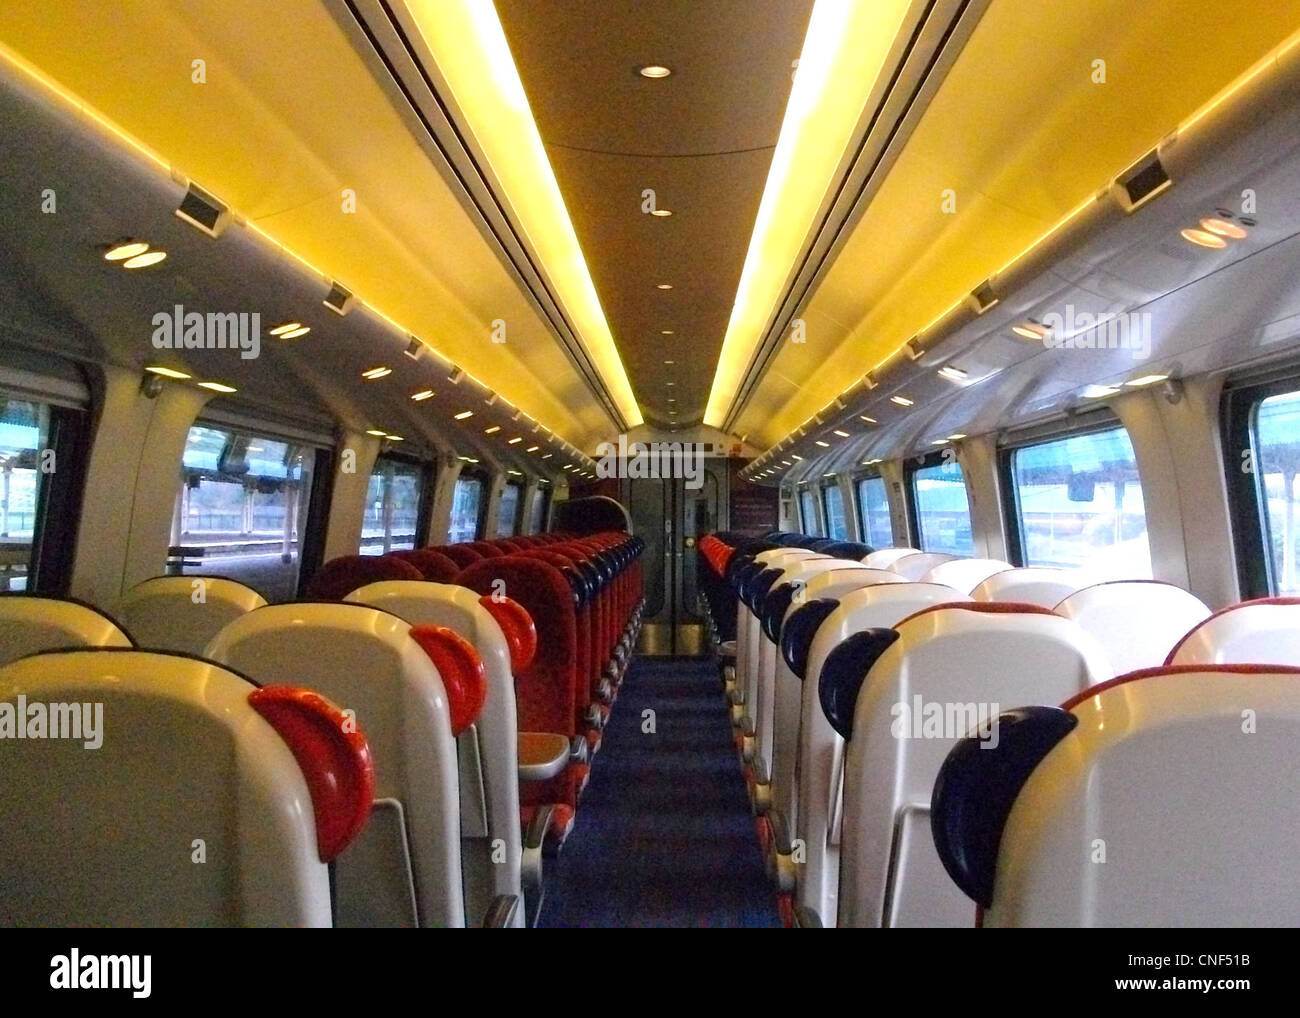 The Interior Of Standard Class In A Mso Vehicle Aboard A